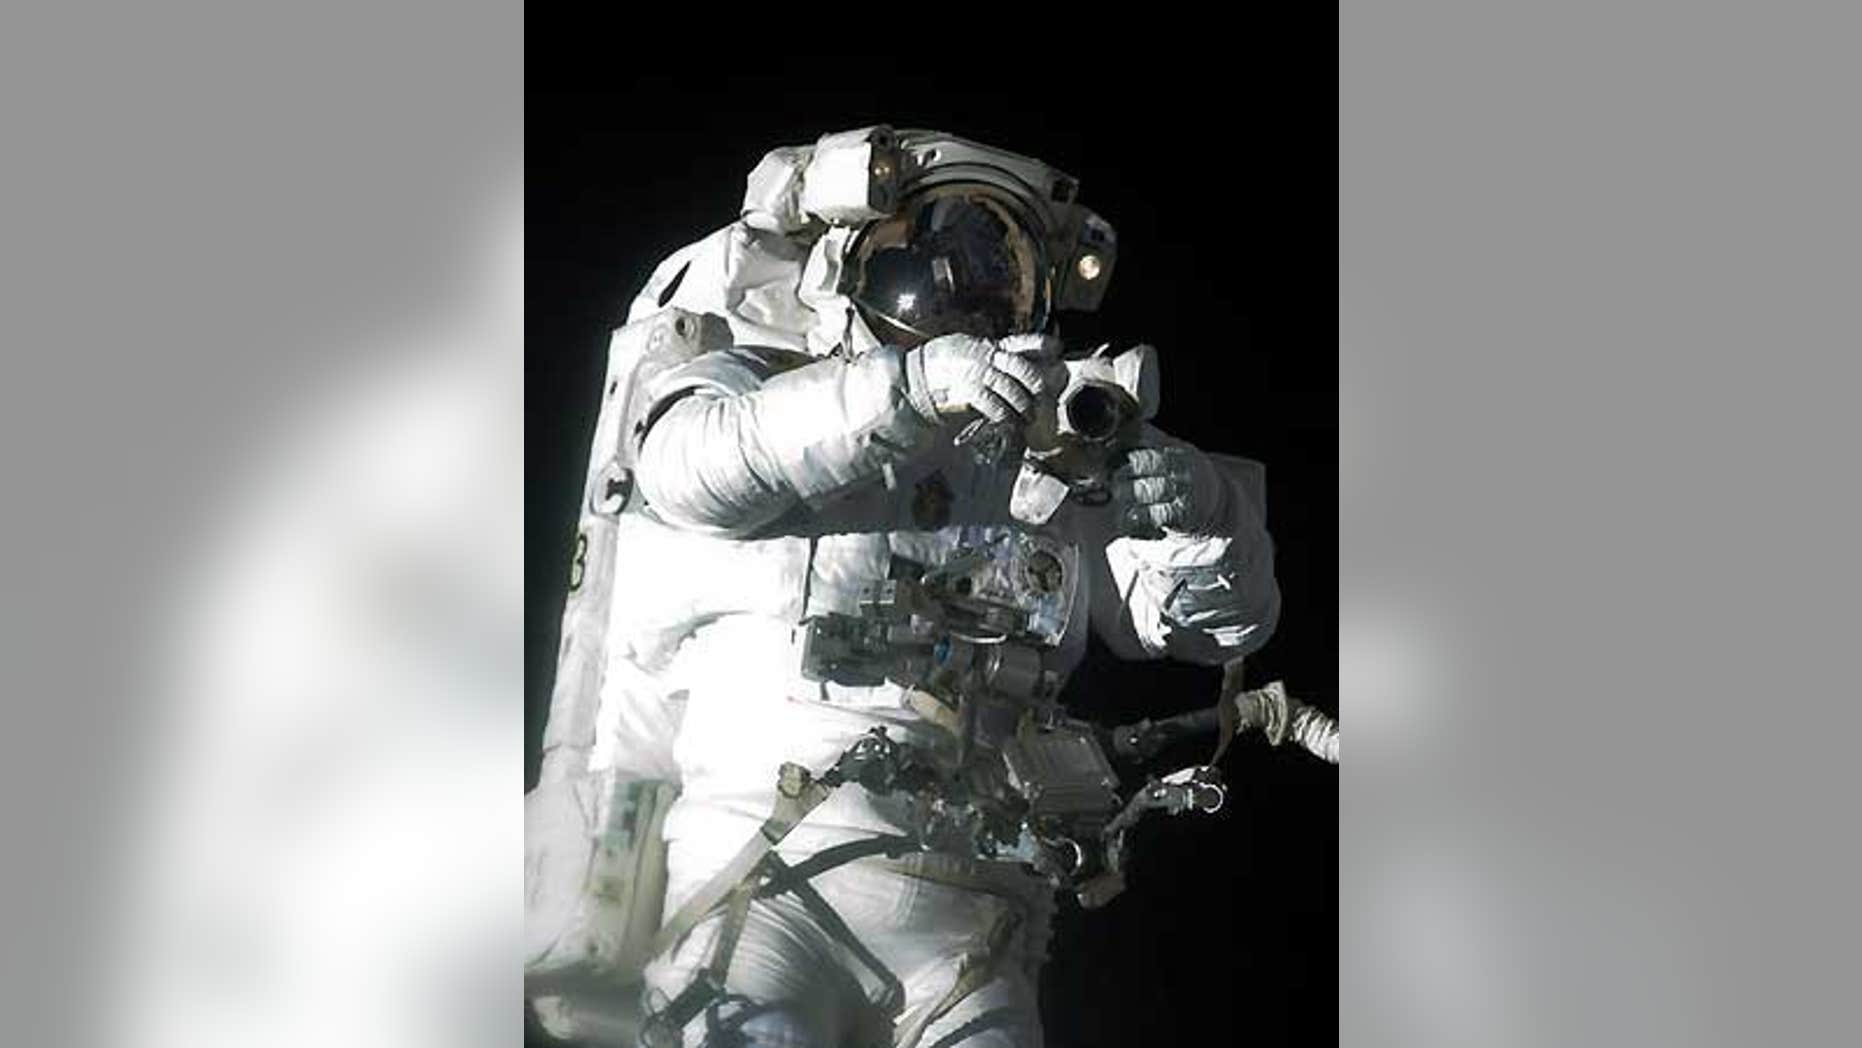 Atlantis shuttle astronaut Robert Satcher Jr. holds a camera during his mission's first spacewalk